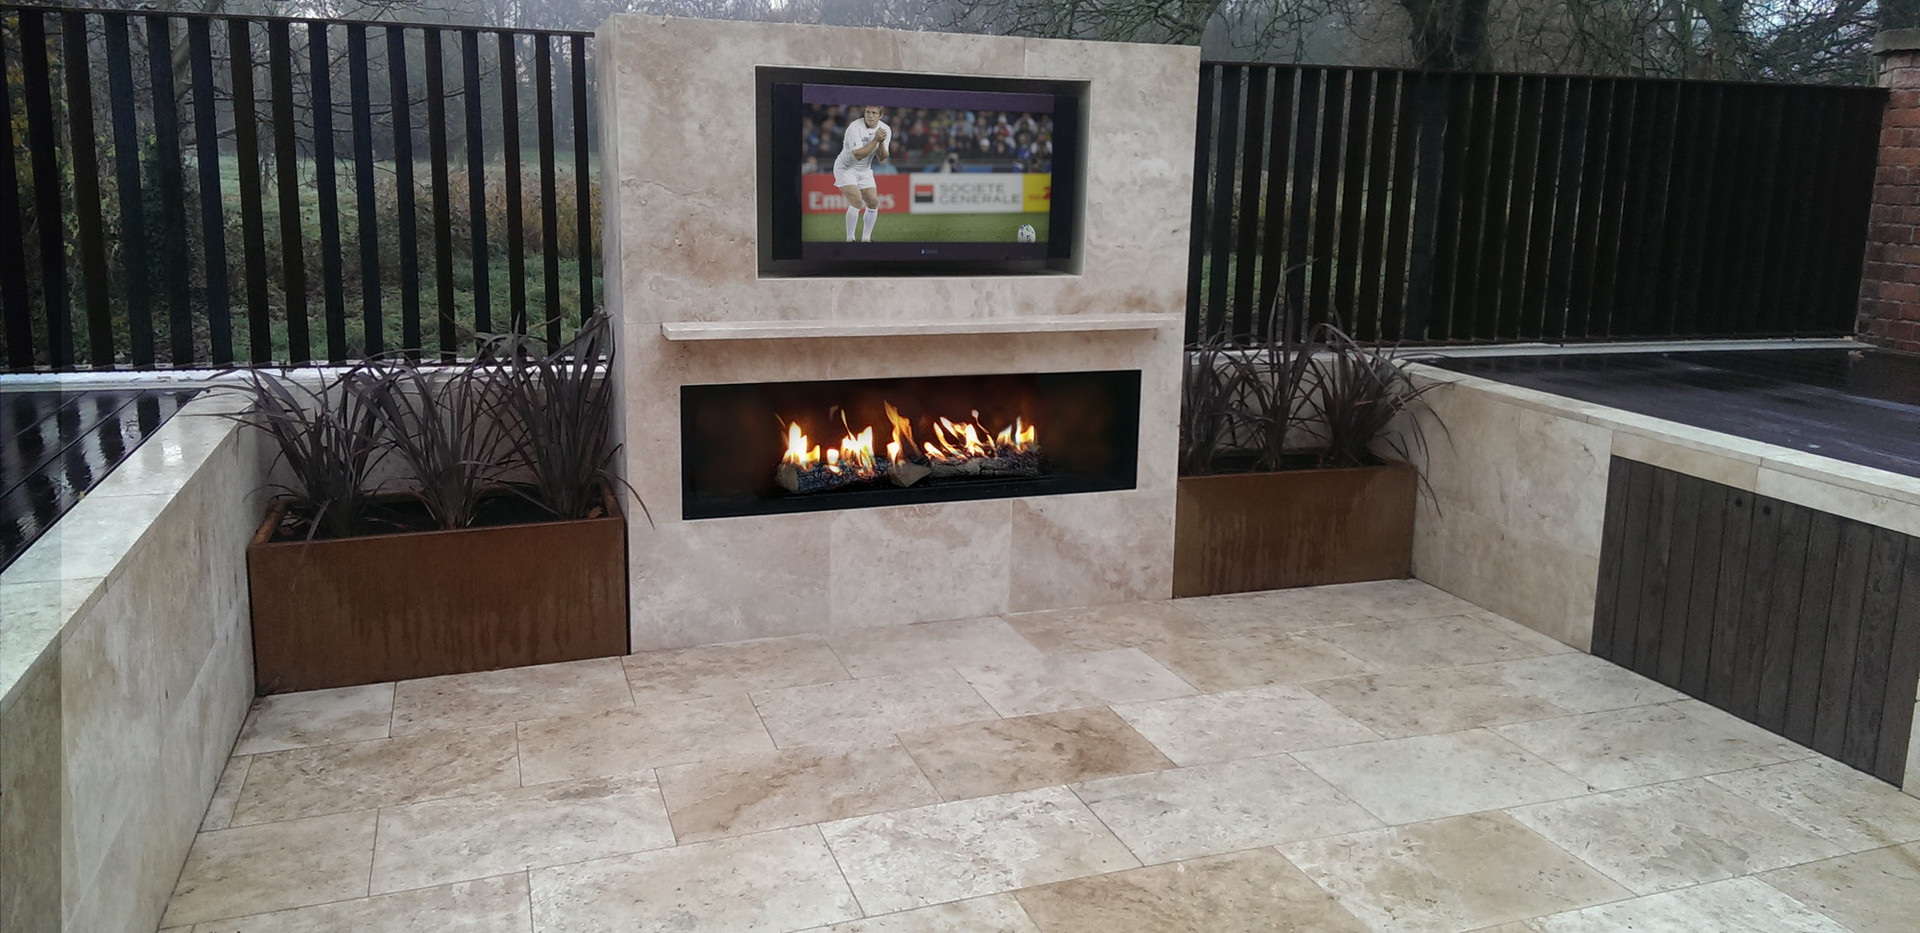 Outdoor gas fireplace 1800mm wide with TV over.